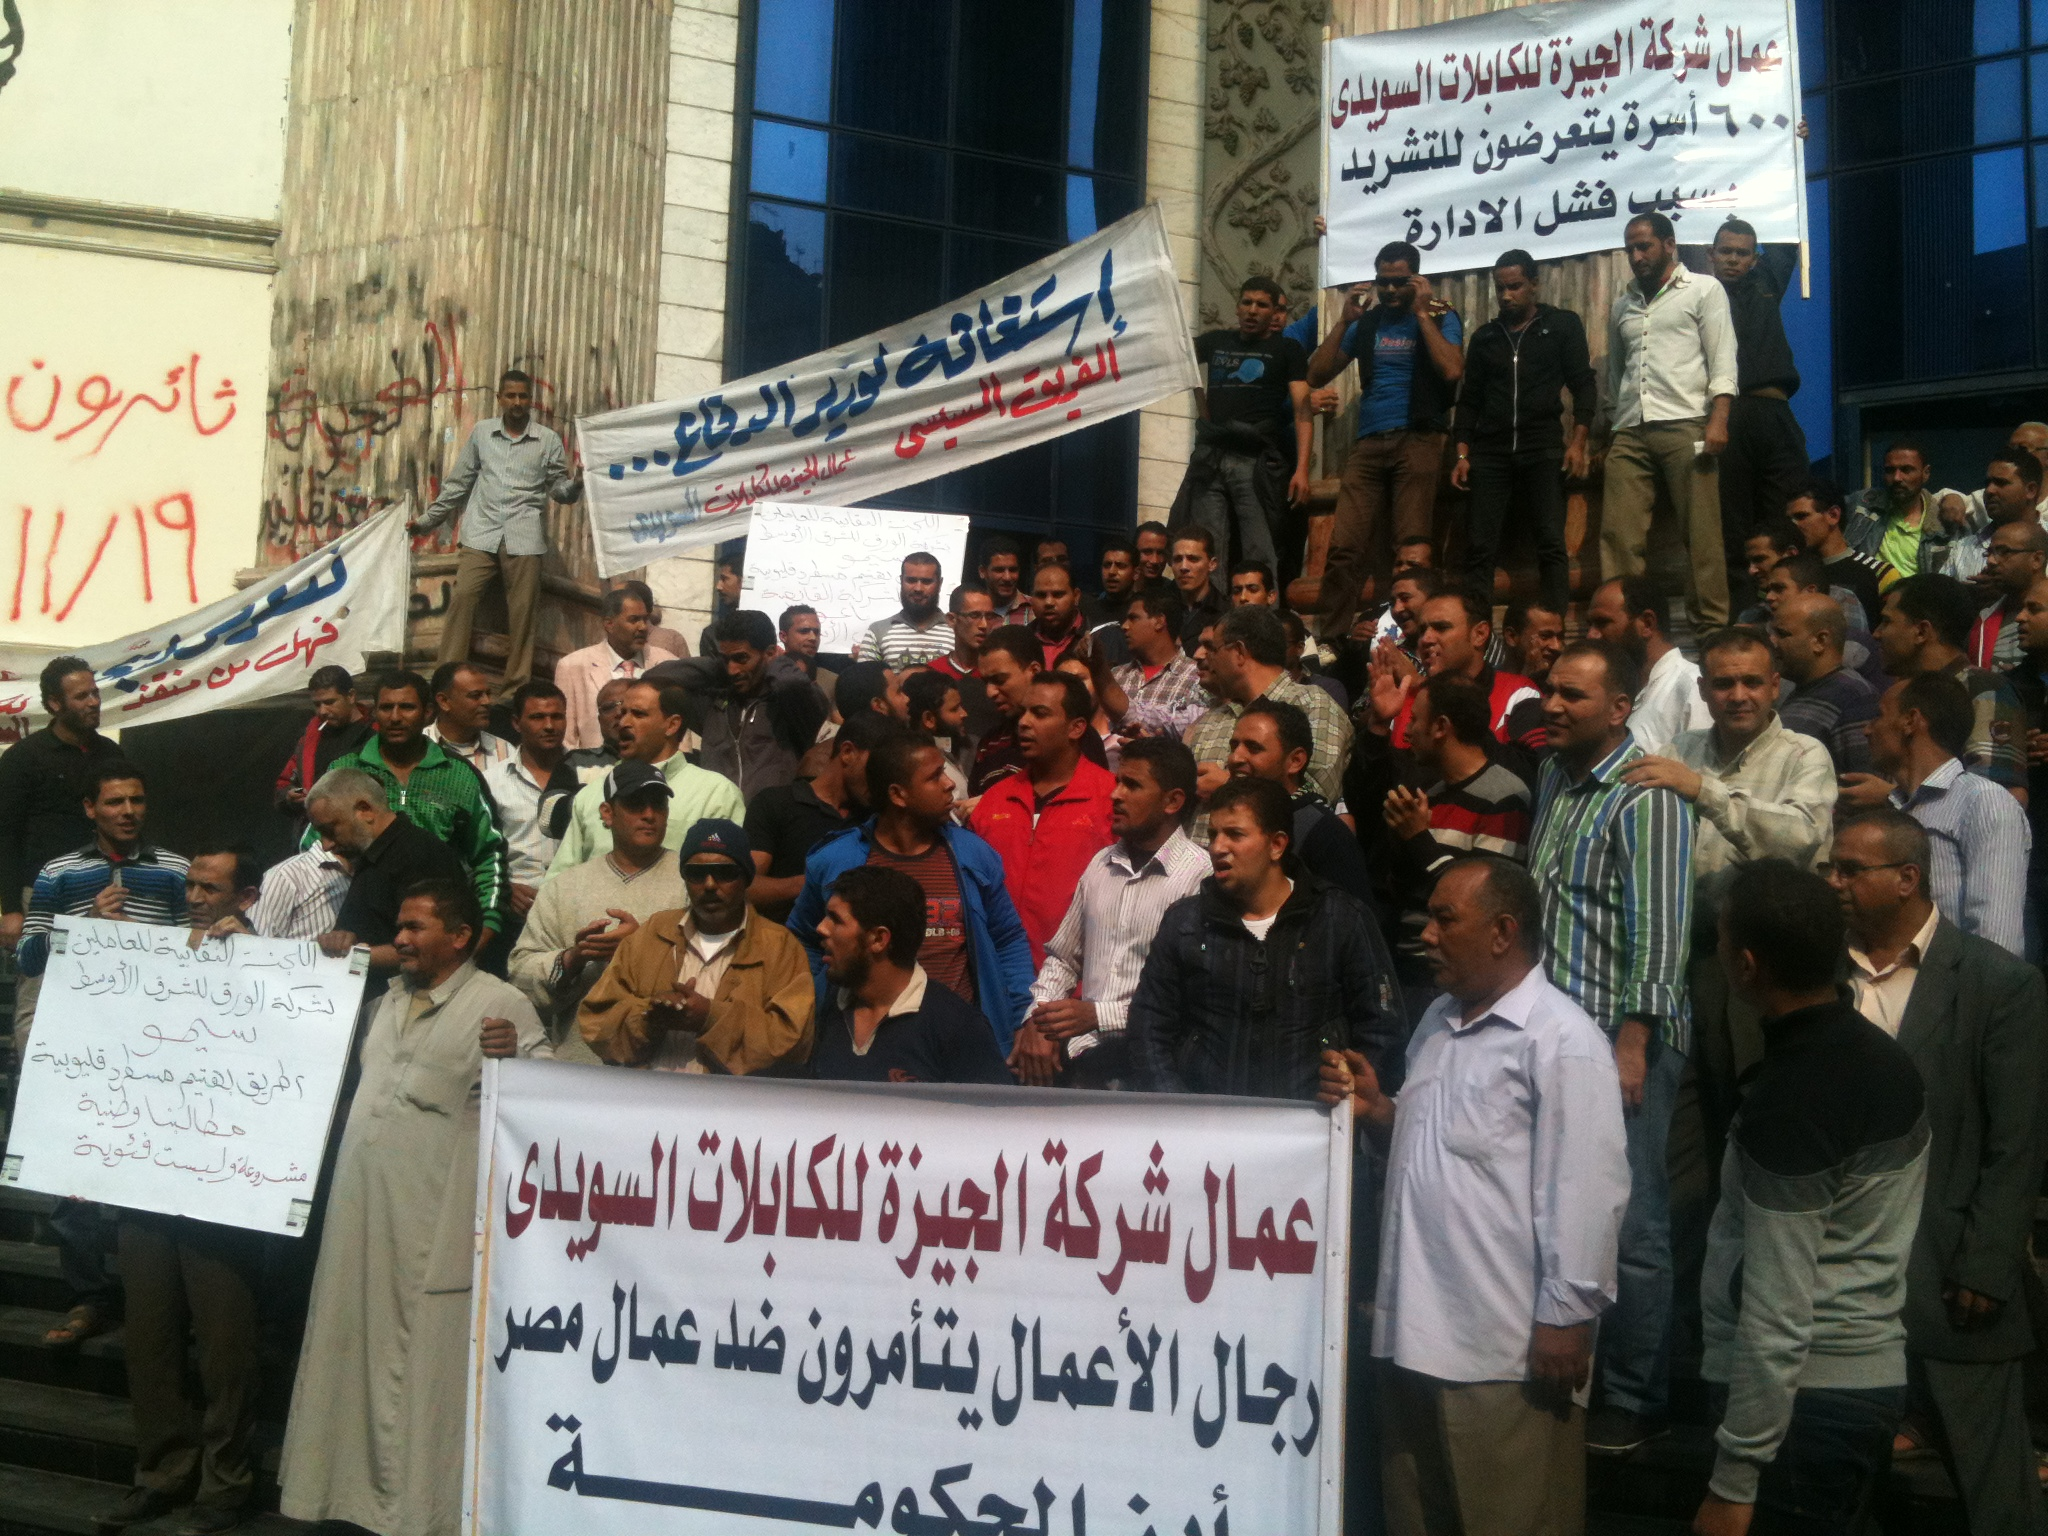 Workers protest their conditions on the steps of the Press Syndicate on Wednesday (Photo by AbdelHalim H. AbdAllah/DNE)